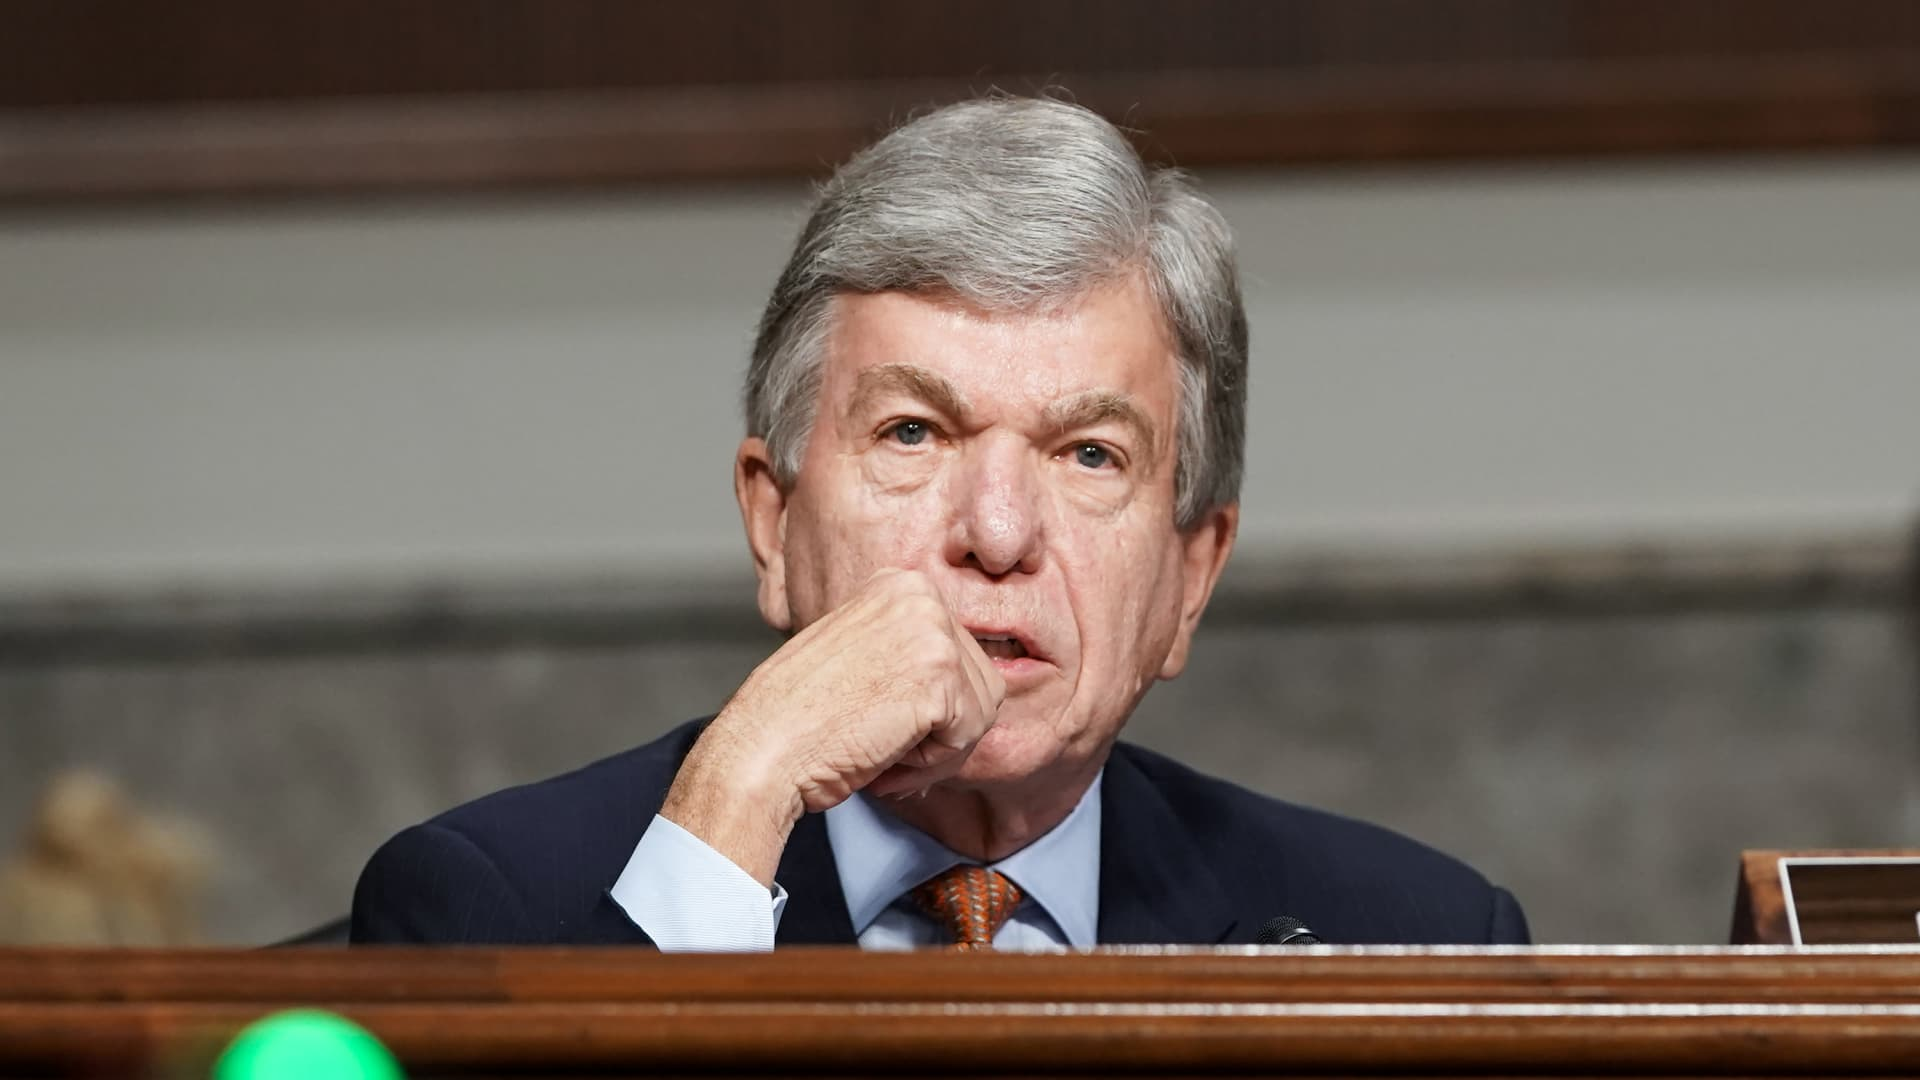 Sen. Roy Blunt (R-MO) asks questions during a Senate Homeland Security and Governmental Affairs & Senate Rules and Administration joint hearing to discuss the January 6th attack on the U.S. Capitol on March 3, 2021 in Washington, DC.